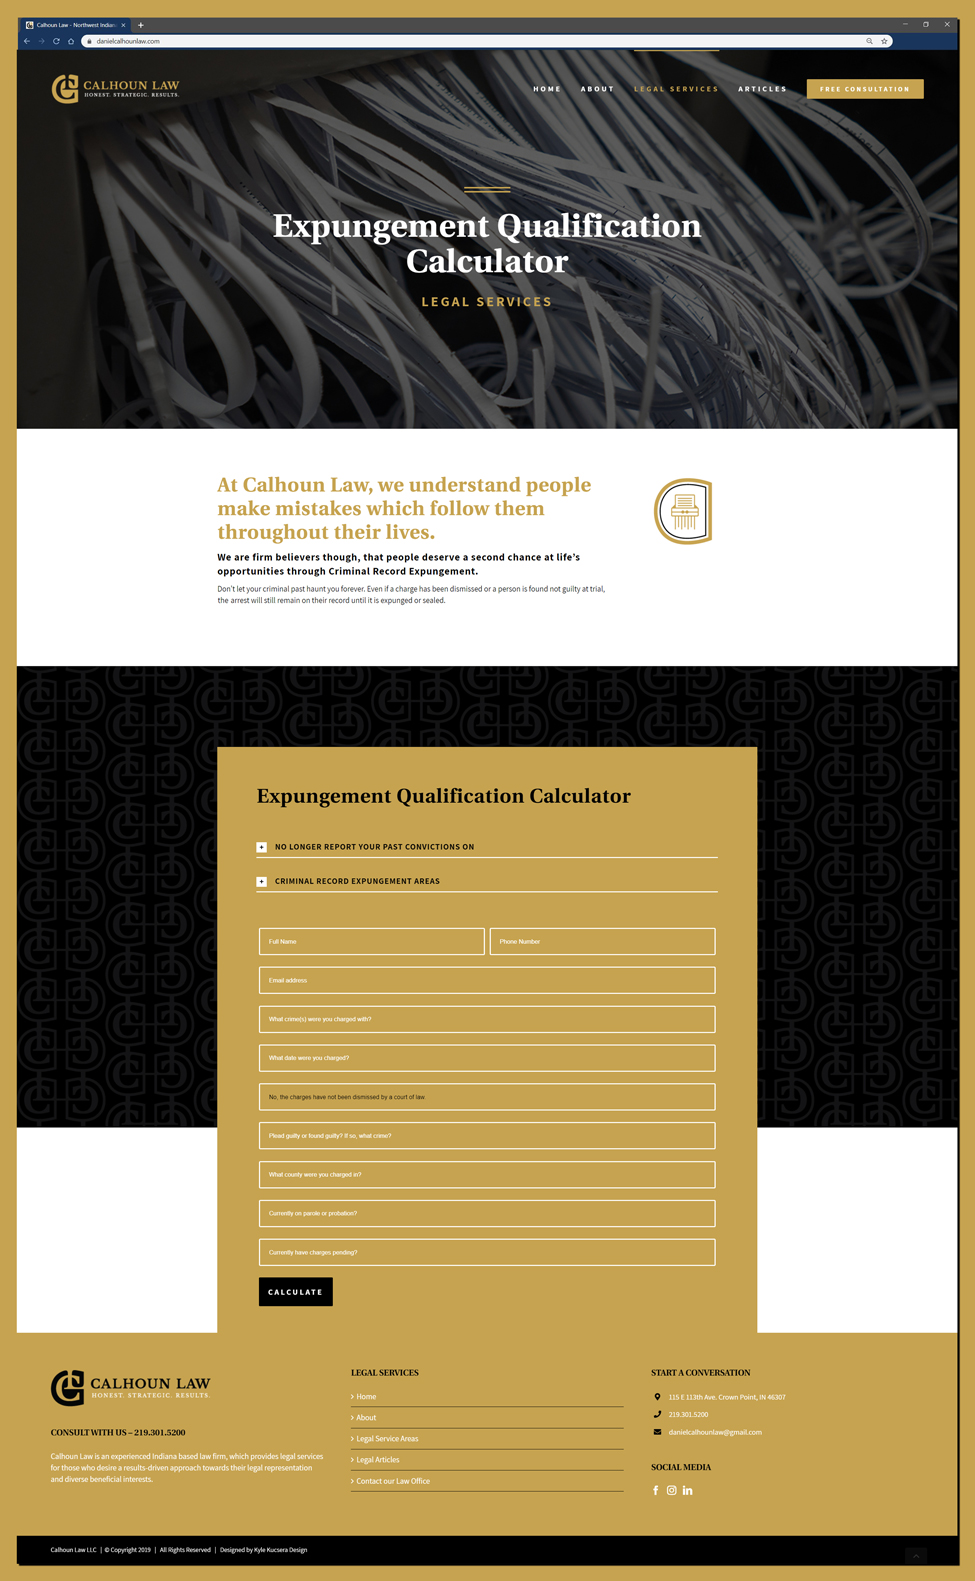 Web design for an Expungement Calculator on a law office website